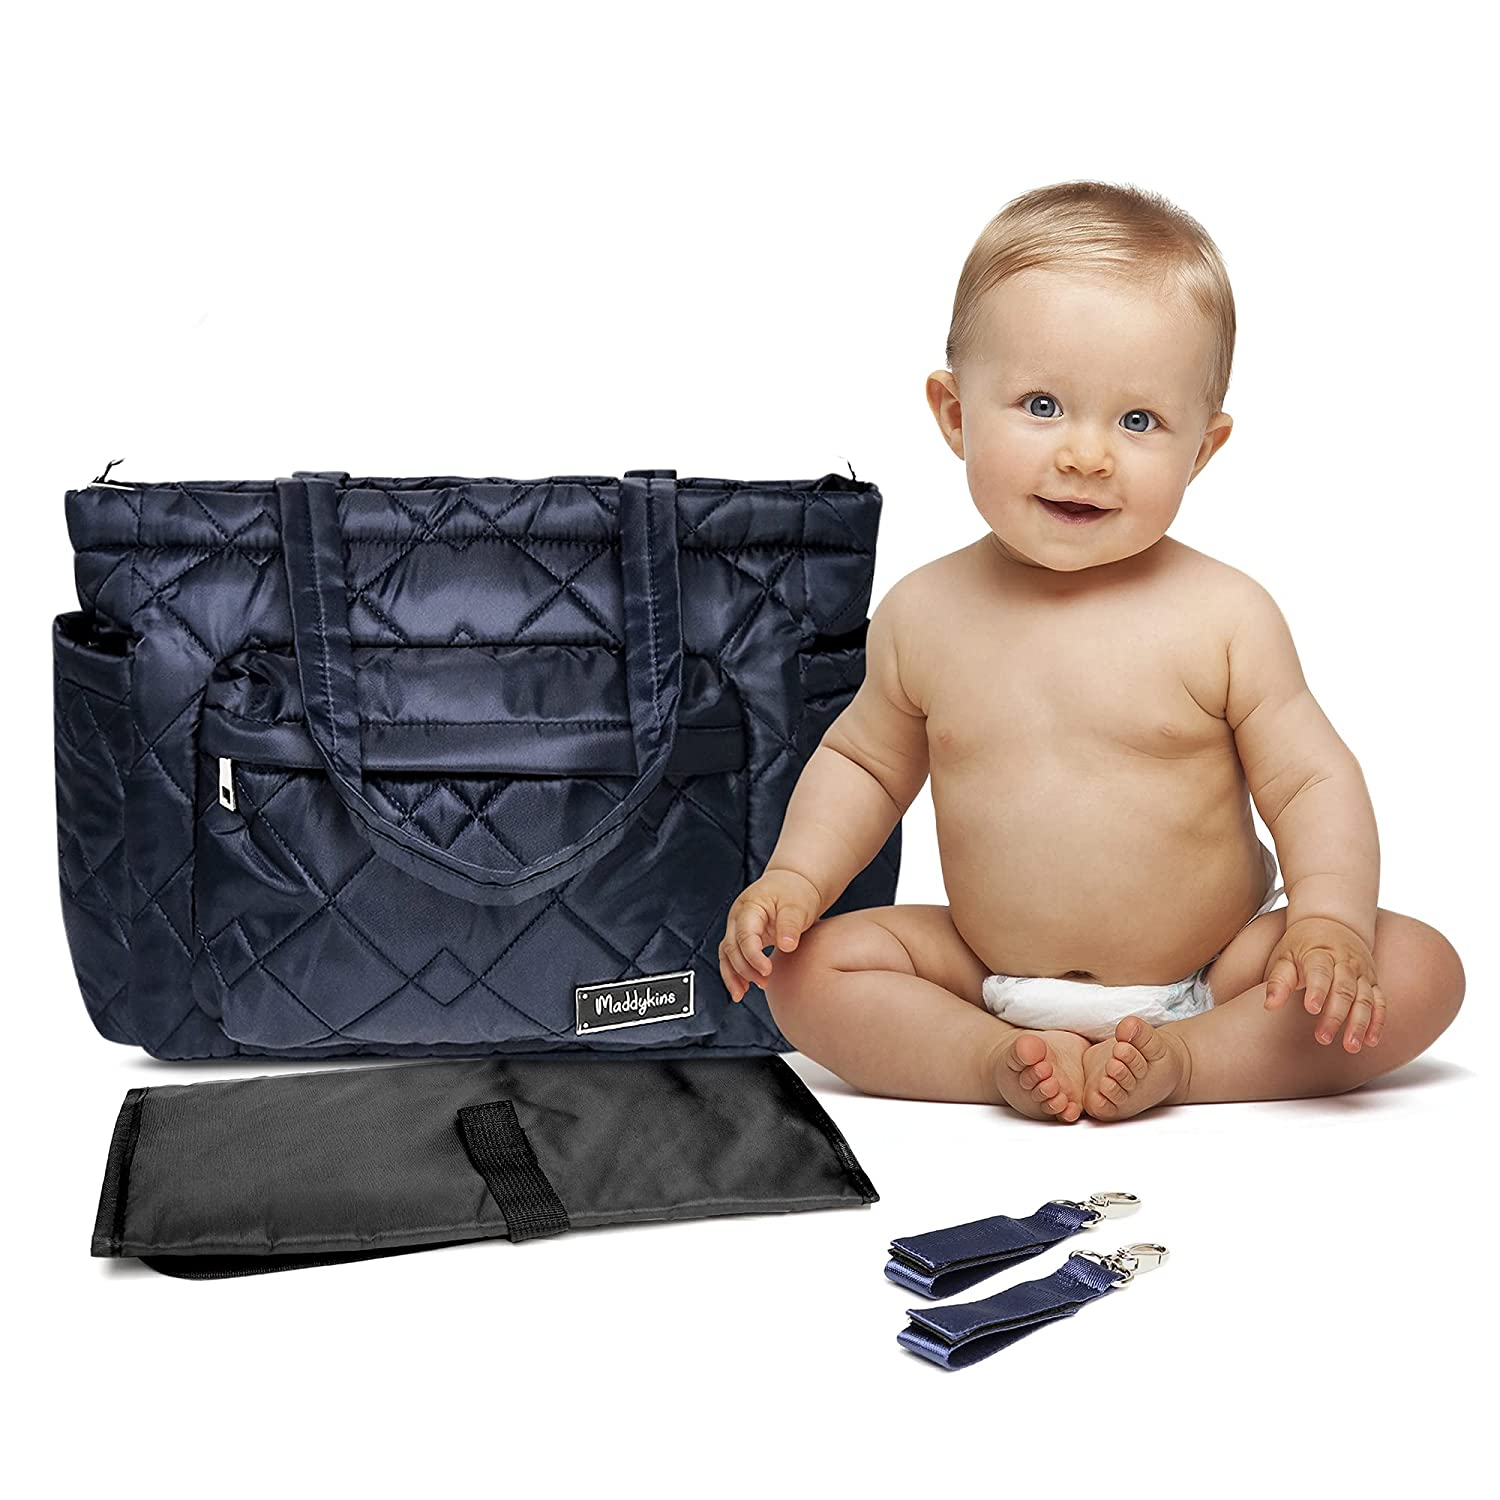 Maddykins - Quilted Tote Bag, Stylish Diaper Tote Bag, Gender Neutral Diaper Bag, Travel Bag with Portable Changing Pad, Laptop Pocket, Shoulder Strap, and 2 Stroller Straps, Navy